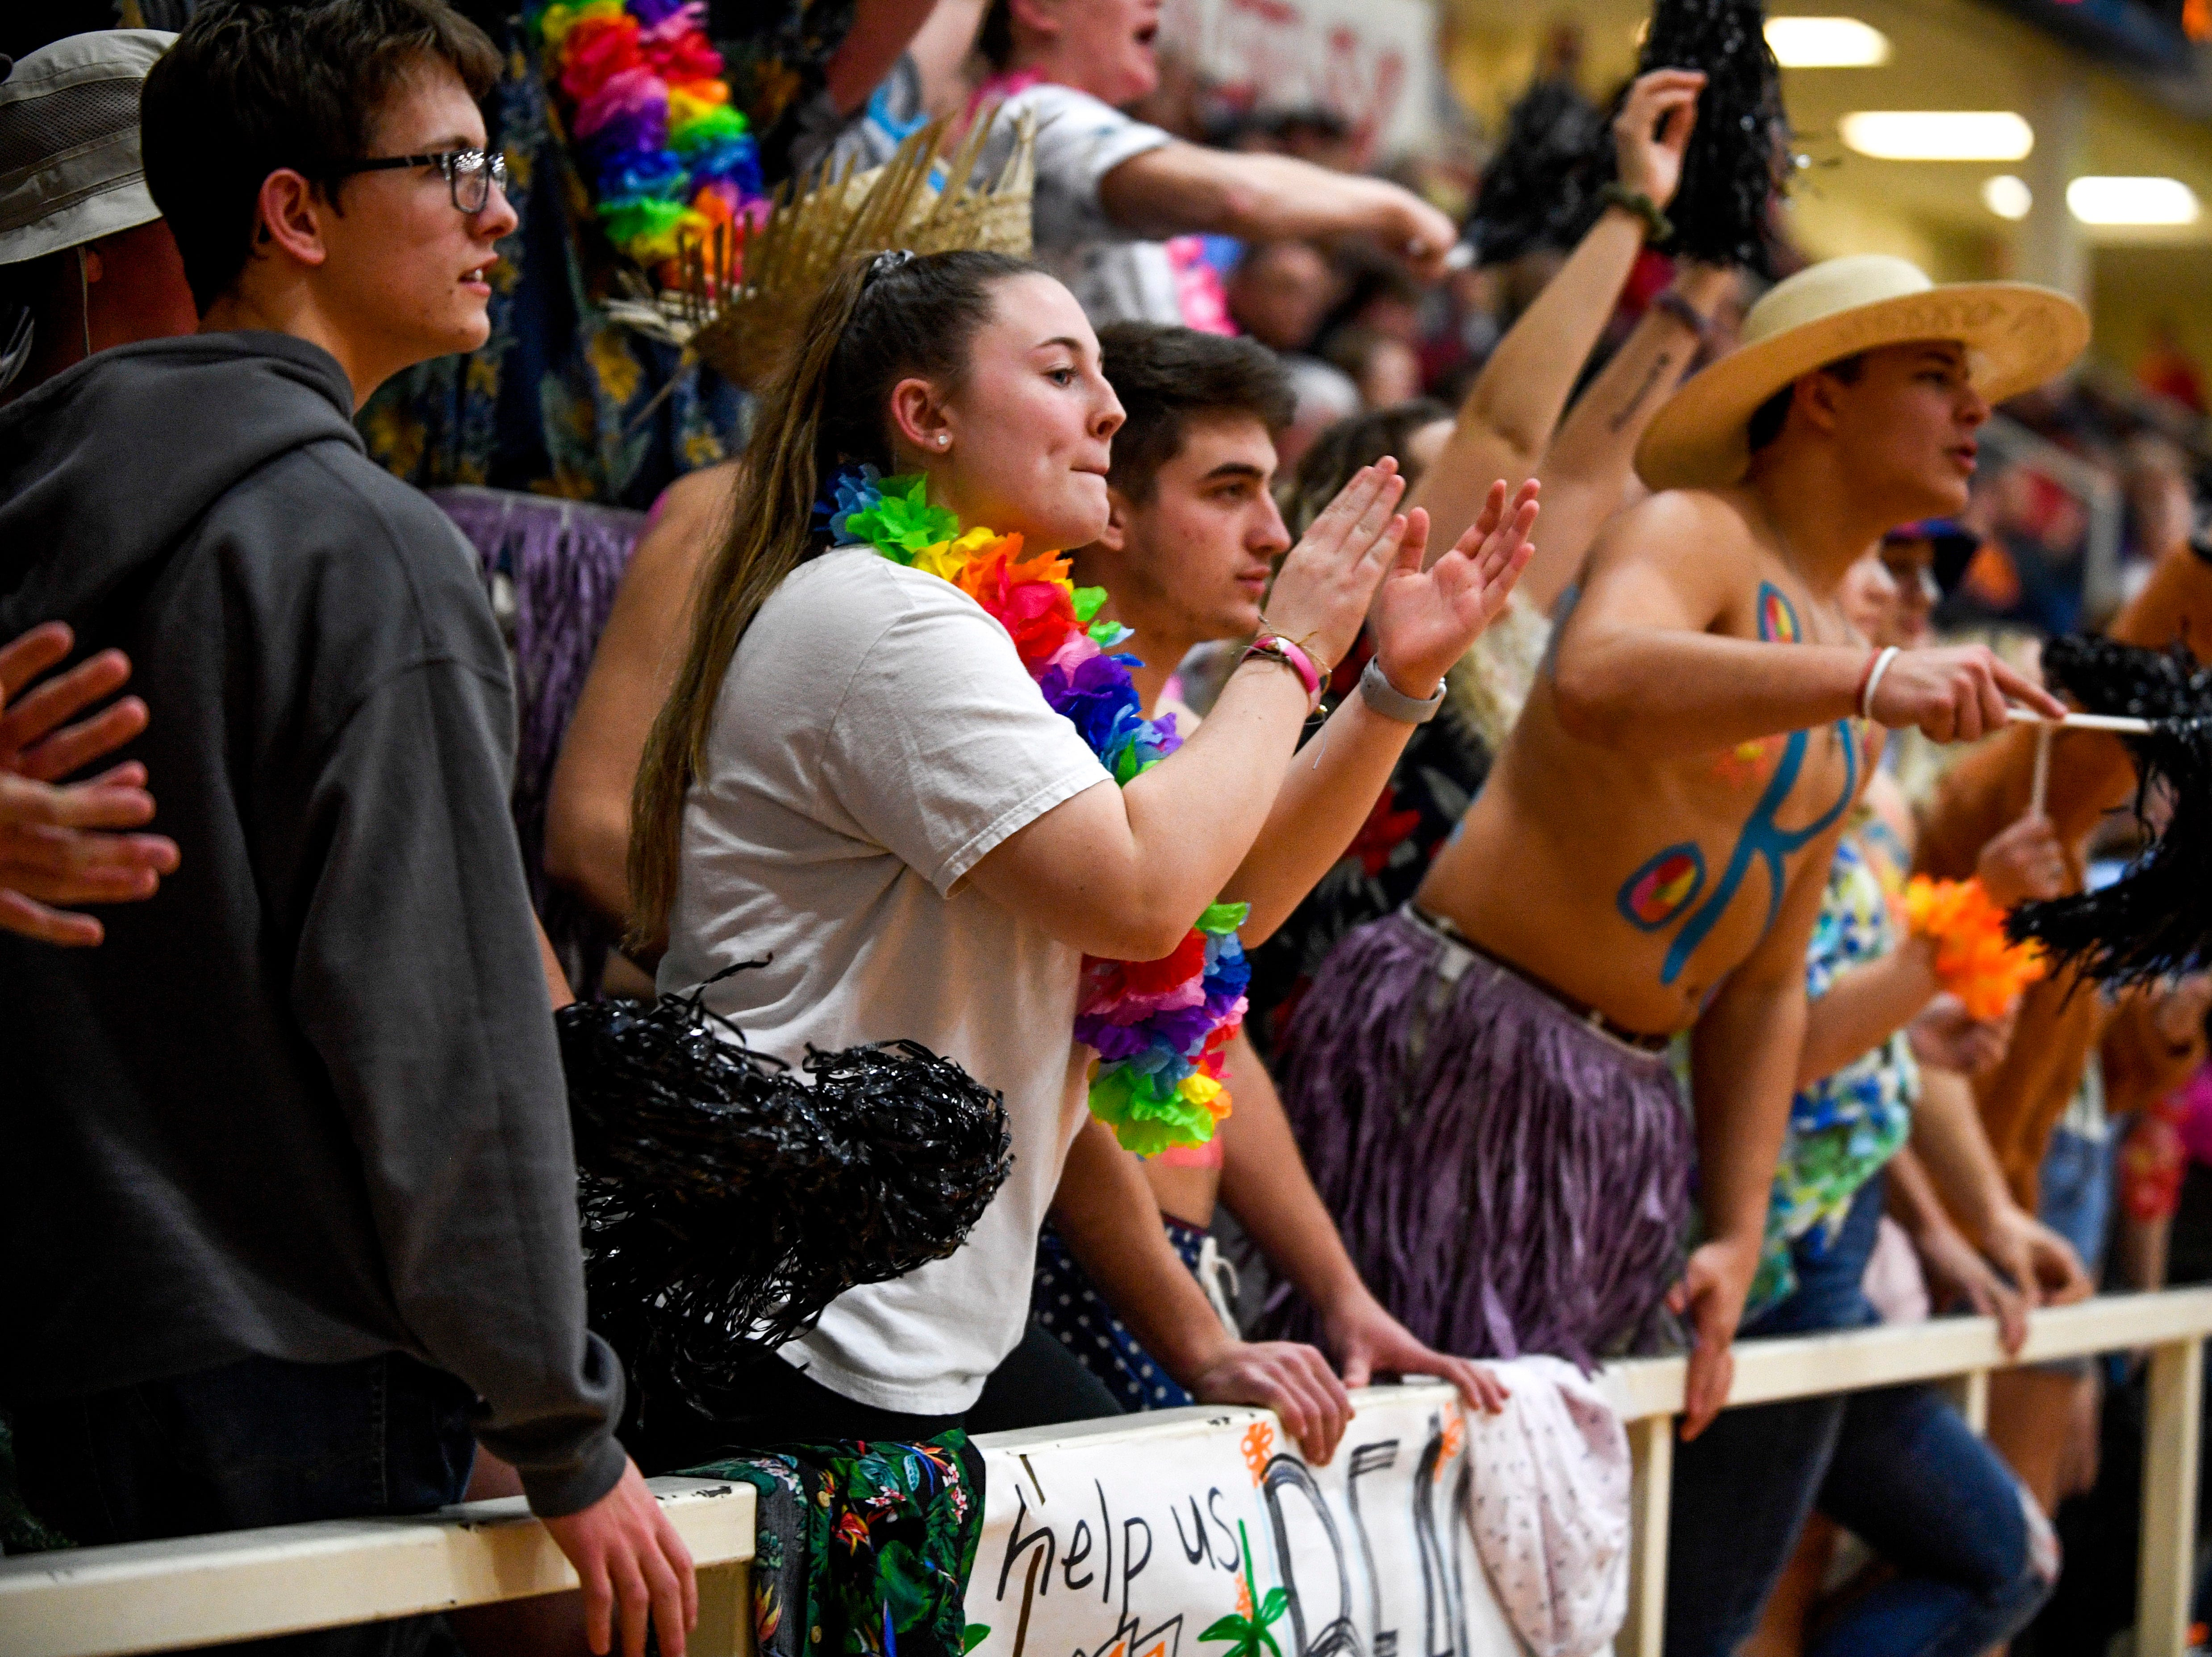 Gibson County students cheer from the stands in a TSSAA girls basketball game between Gibson County and Trinity Christian Academy at Gibson County High School in Dyer, Tenn., on Friday, Jan. 11, 2019.